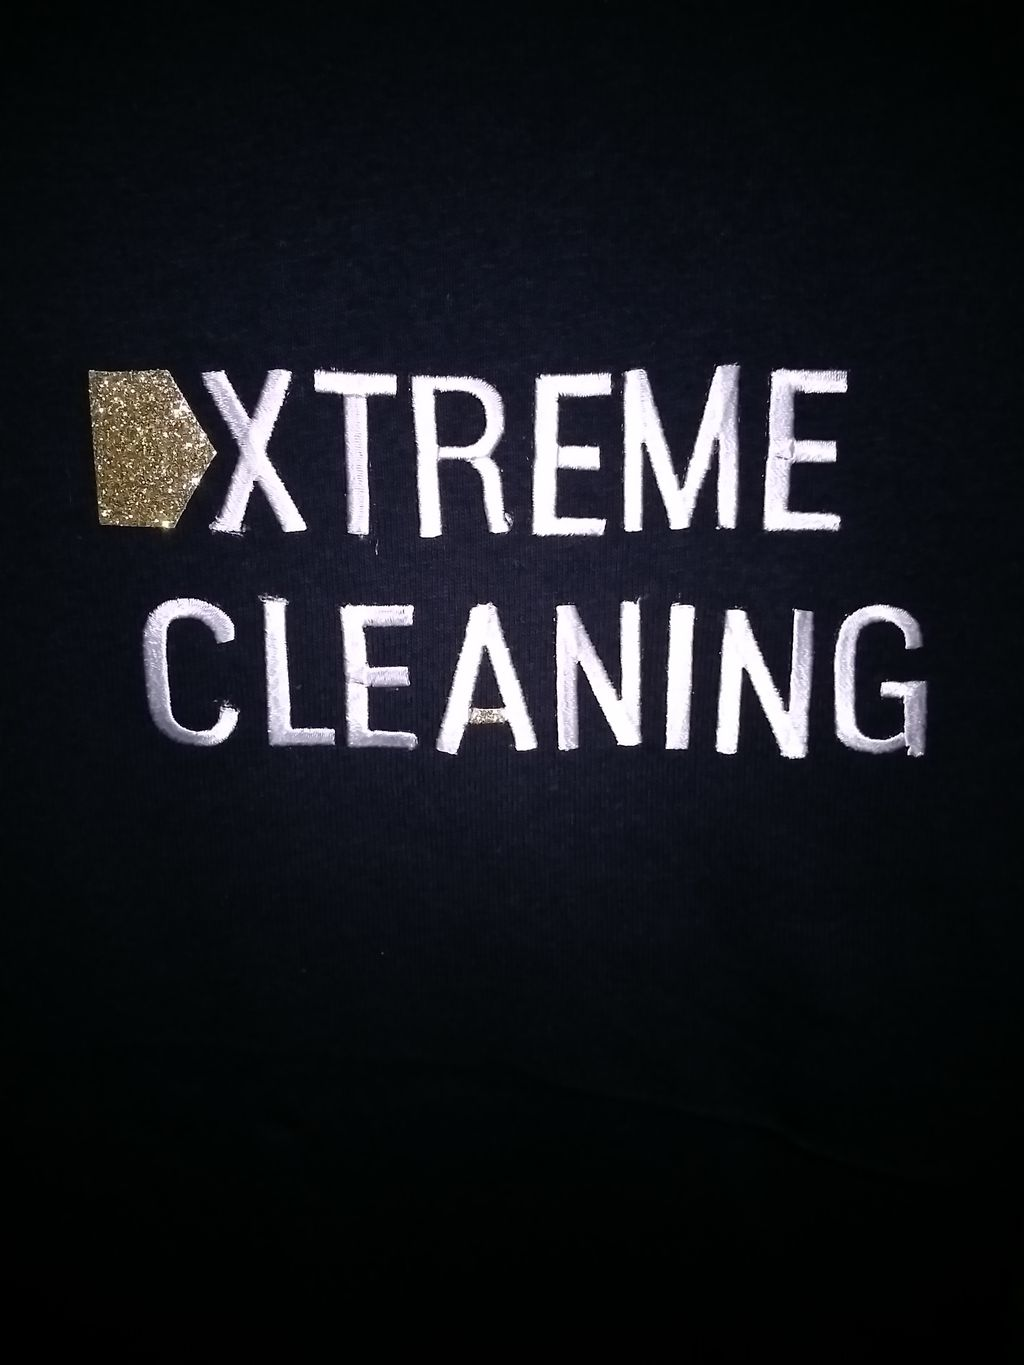 Matting Xtreme cleaning services